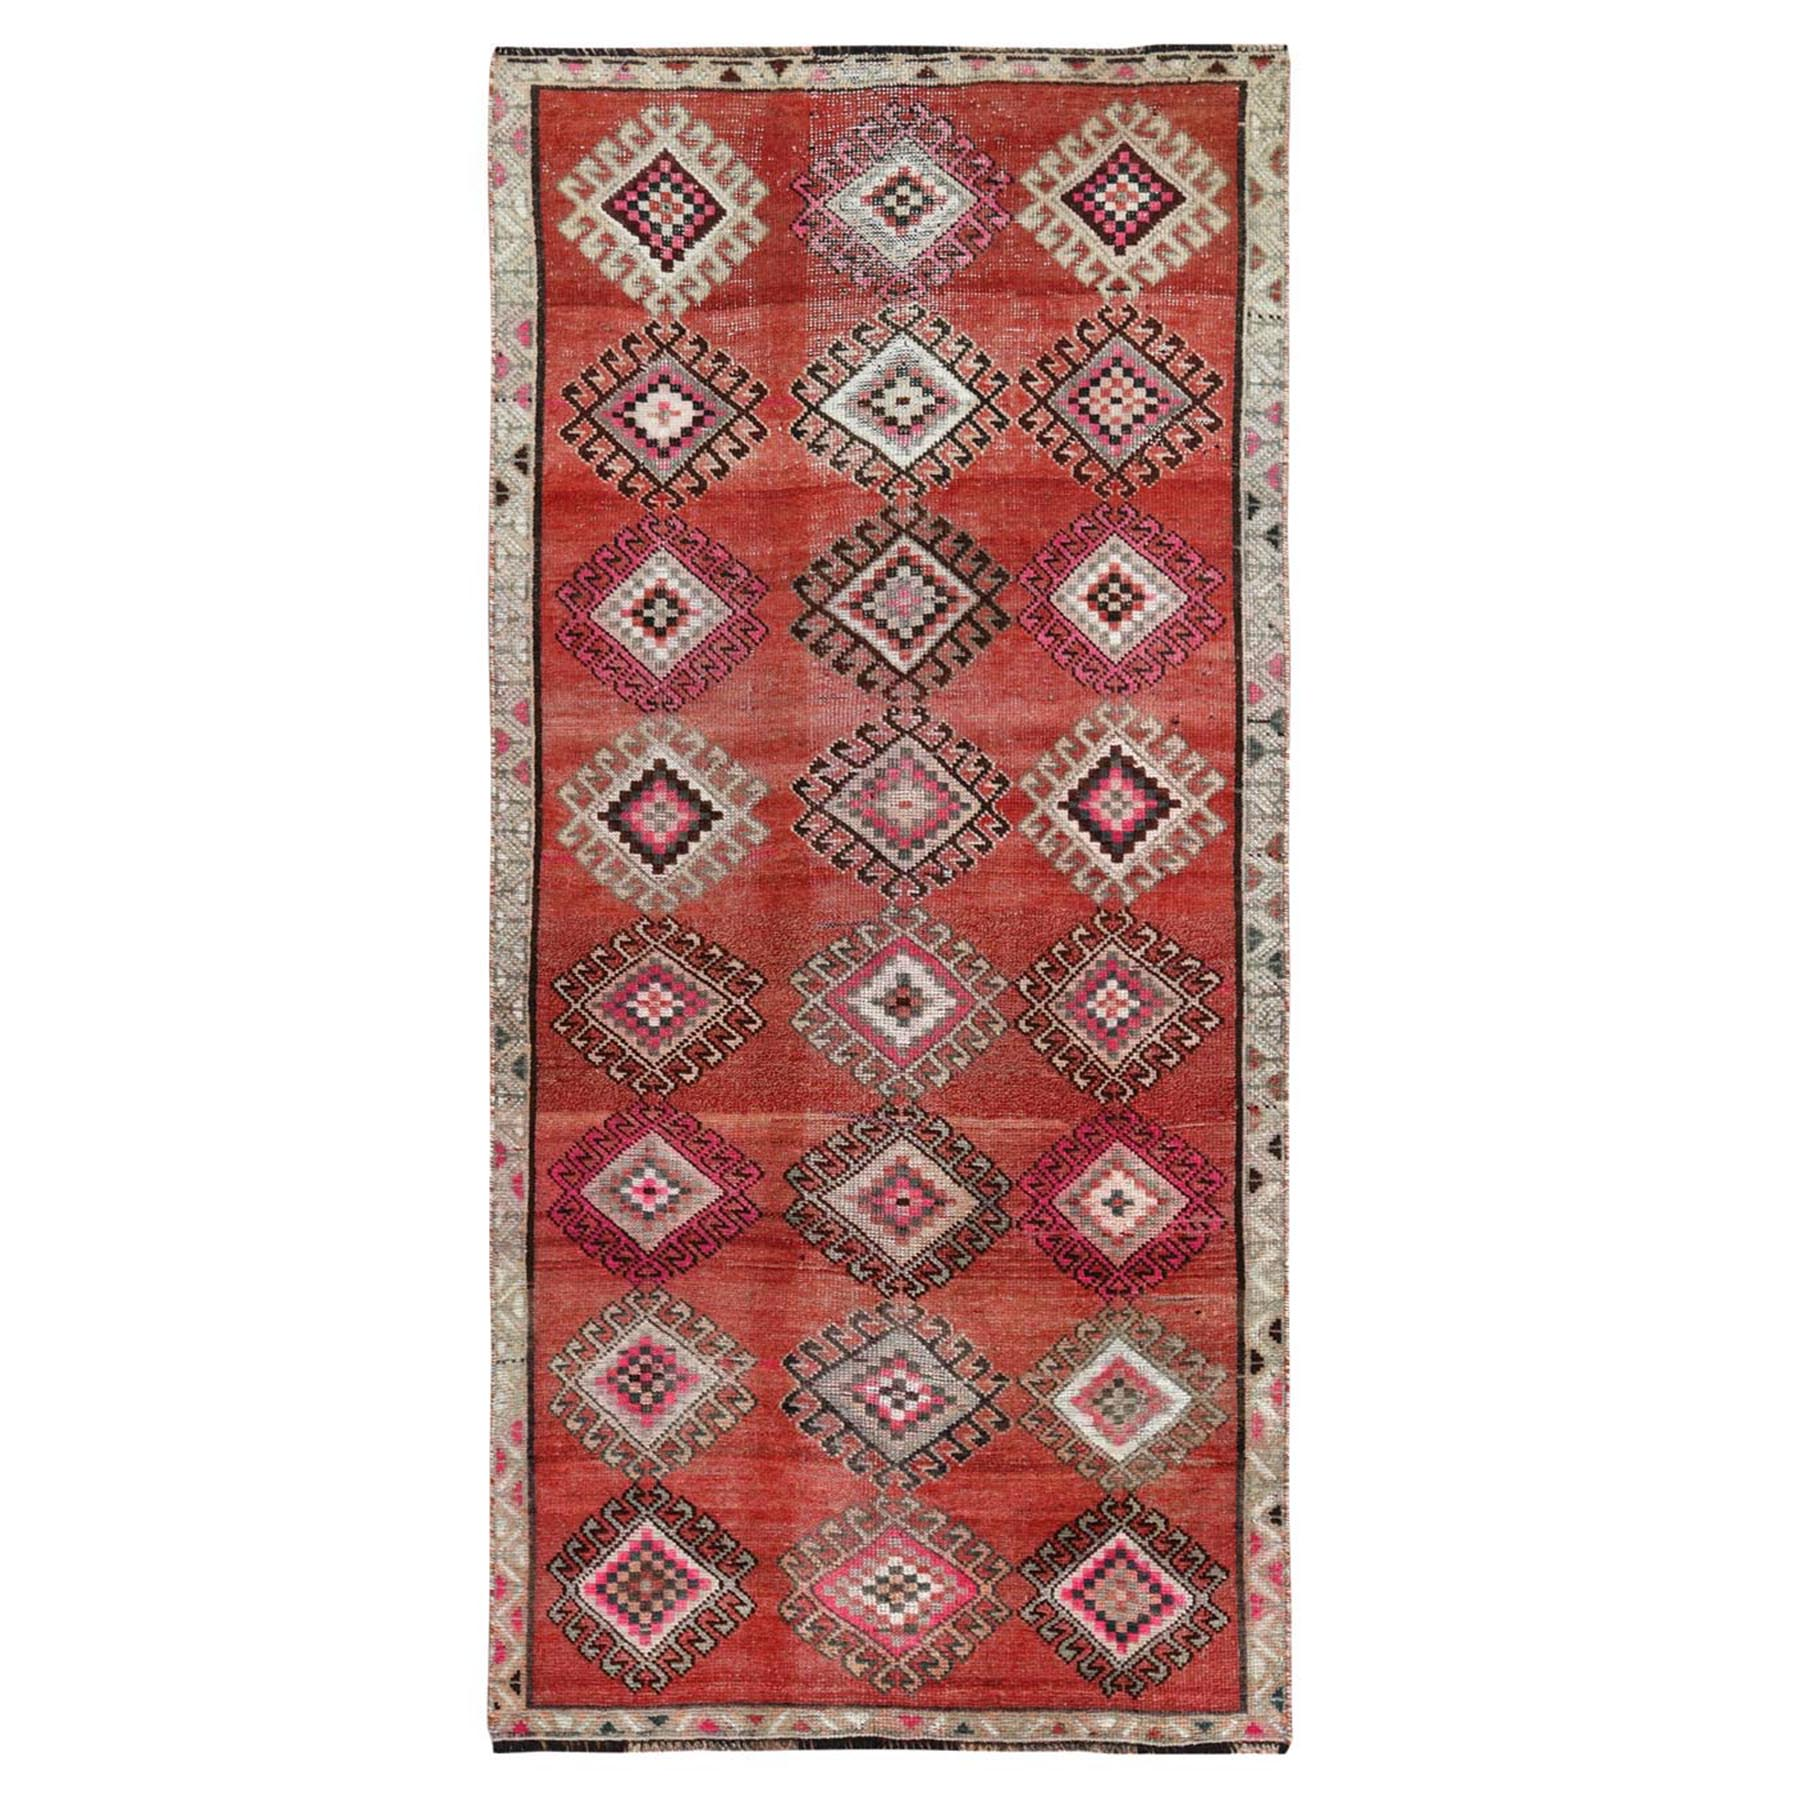 "3'7""x7'9"" Geometric Medallion All Over Design Colorful with The Sunset Persian Shiraz Hand Knotted Wide Runner Oriental Rug"